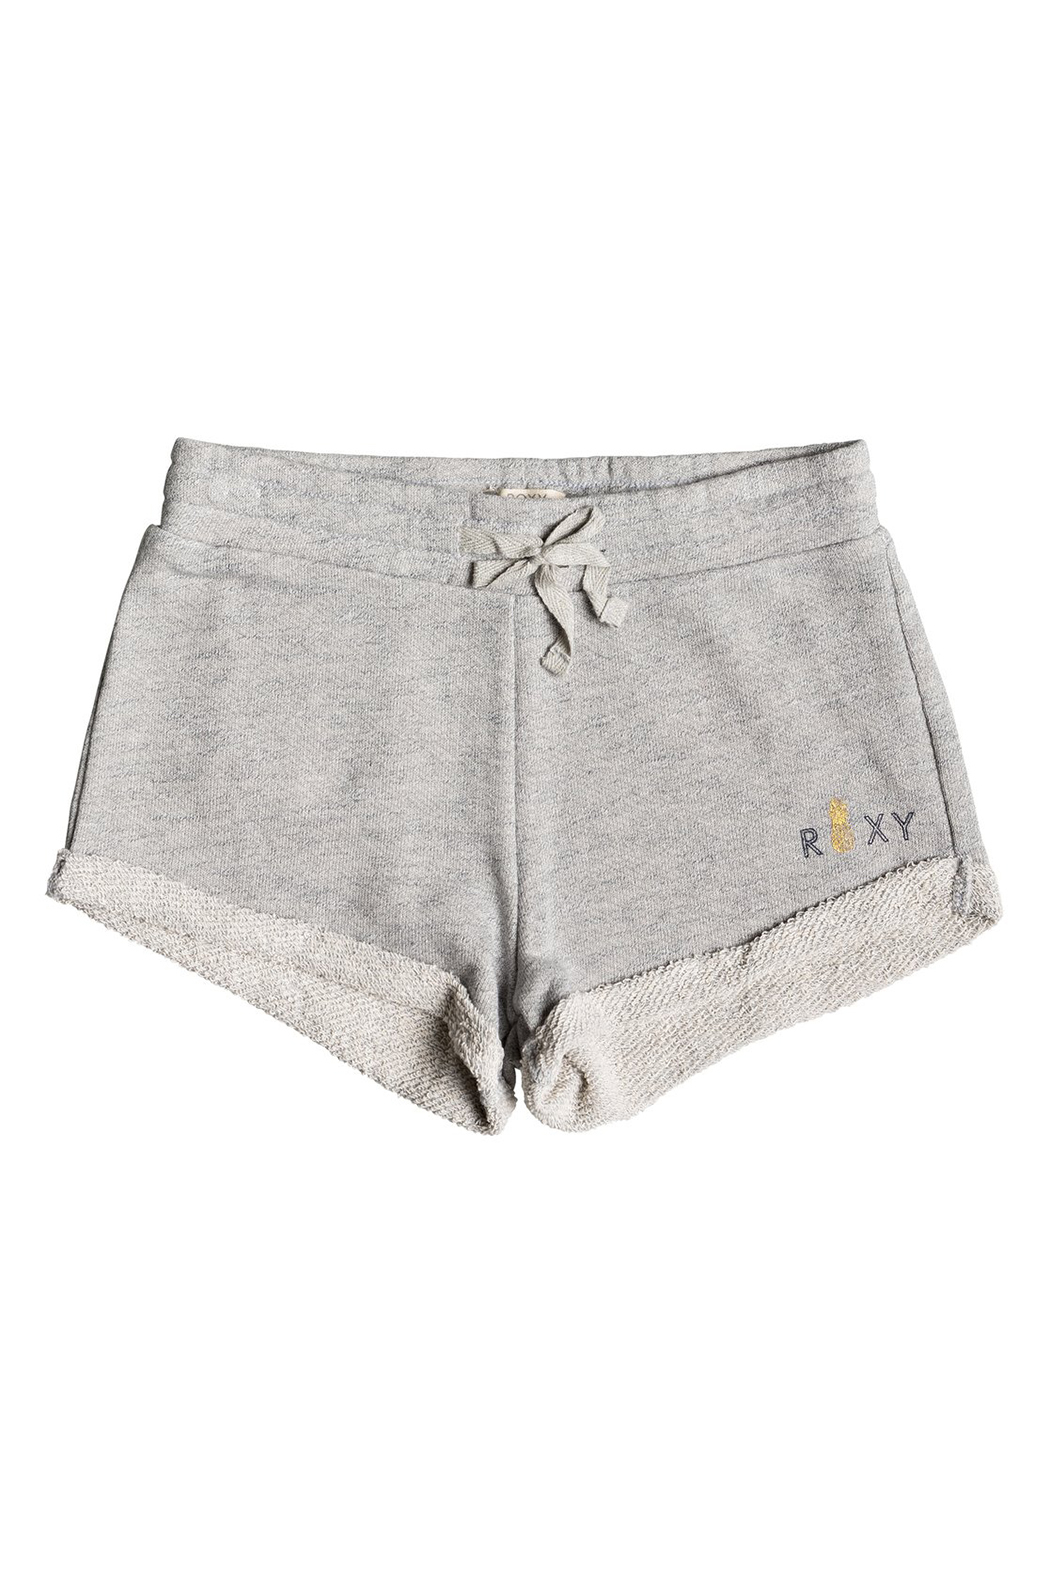 Roxy Travel Often Heather A Sweat Shorts - Front Cropped Image